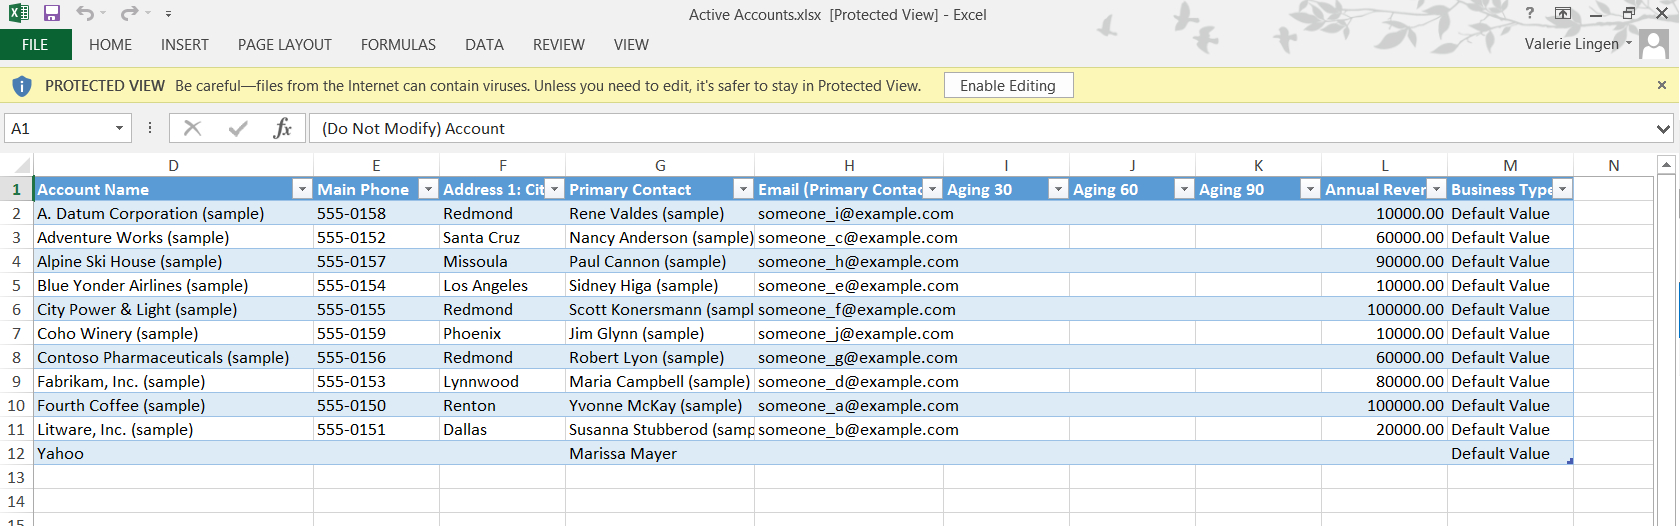 Creating Document Templates For Dynamics Crm 2016 | Ledgeview Partners In Dynamics Crm Excel Templates